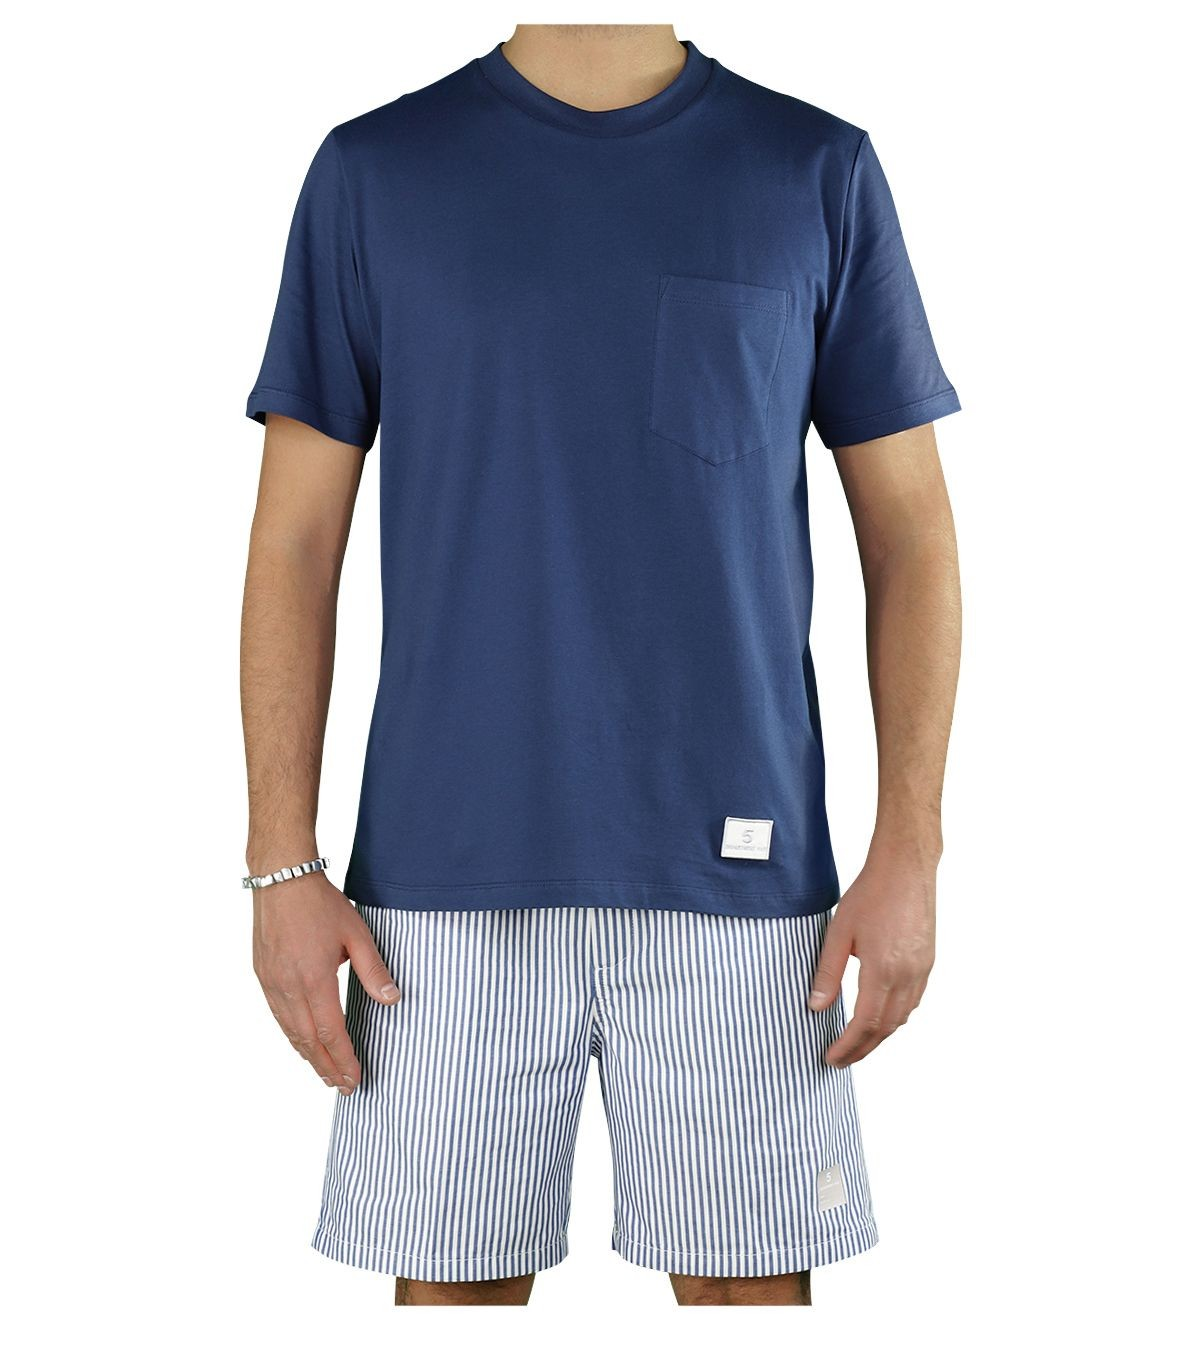 Department 5 Cottons MARTIN NAVY BLUE T-SHIRT WITH POCKET